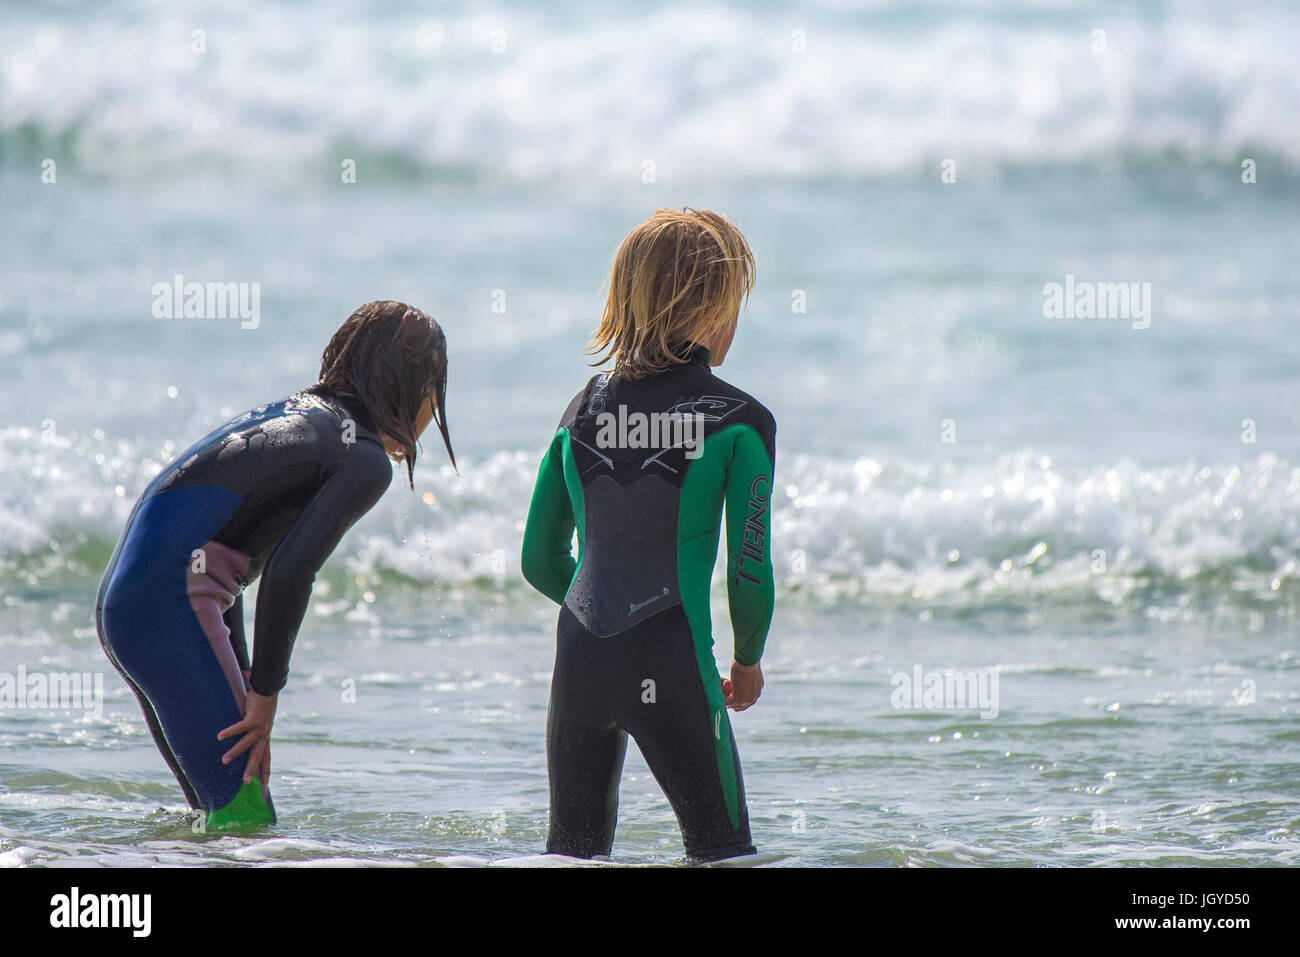 Two young boys wearing wetsuits playing together in the sea. - Stock Image